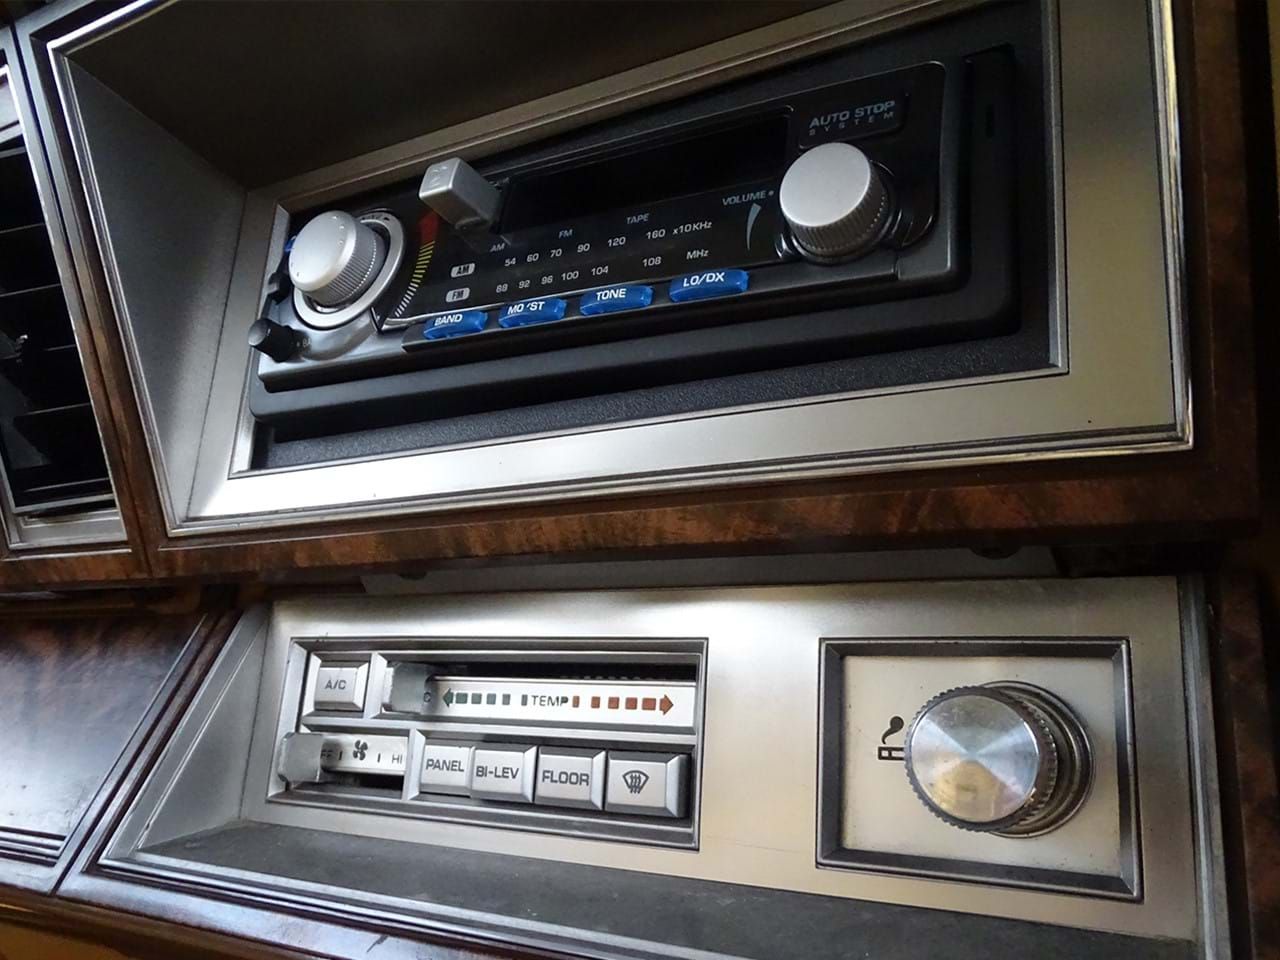 1985 Chrysler LeBaron Town and Country Wagon radio